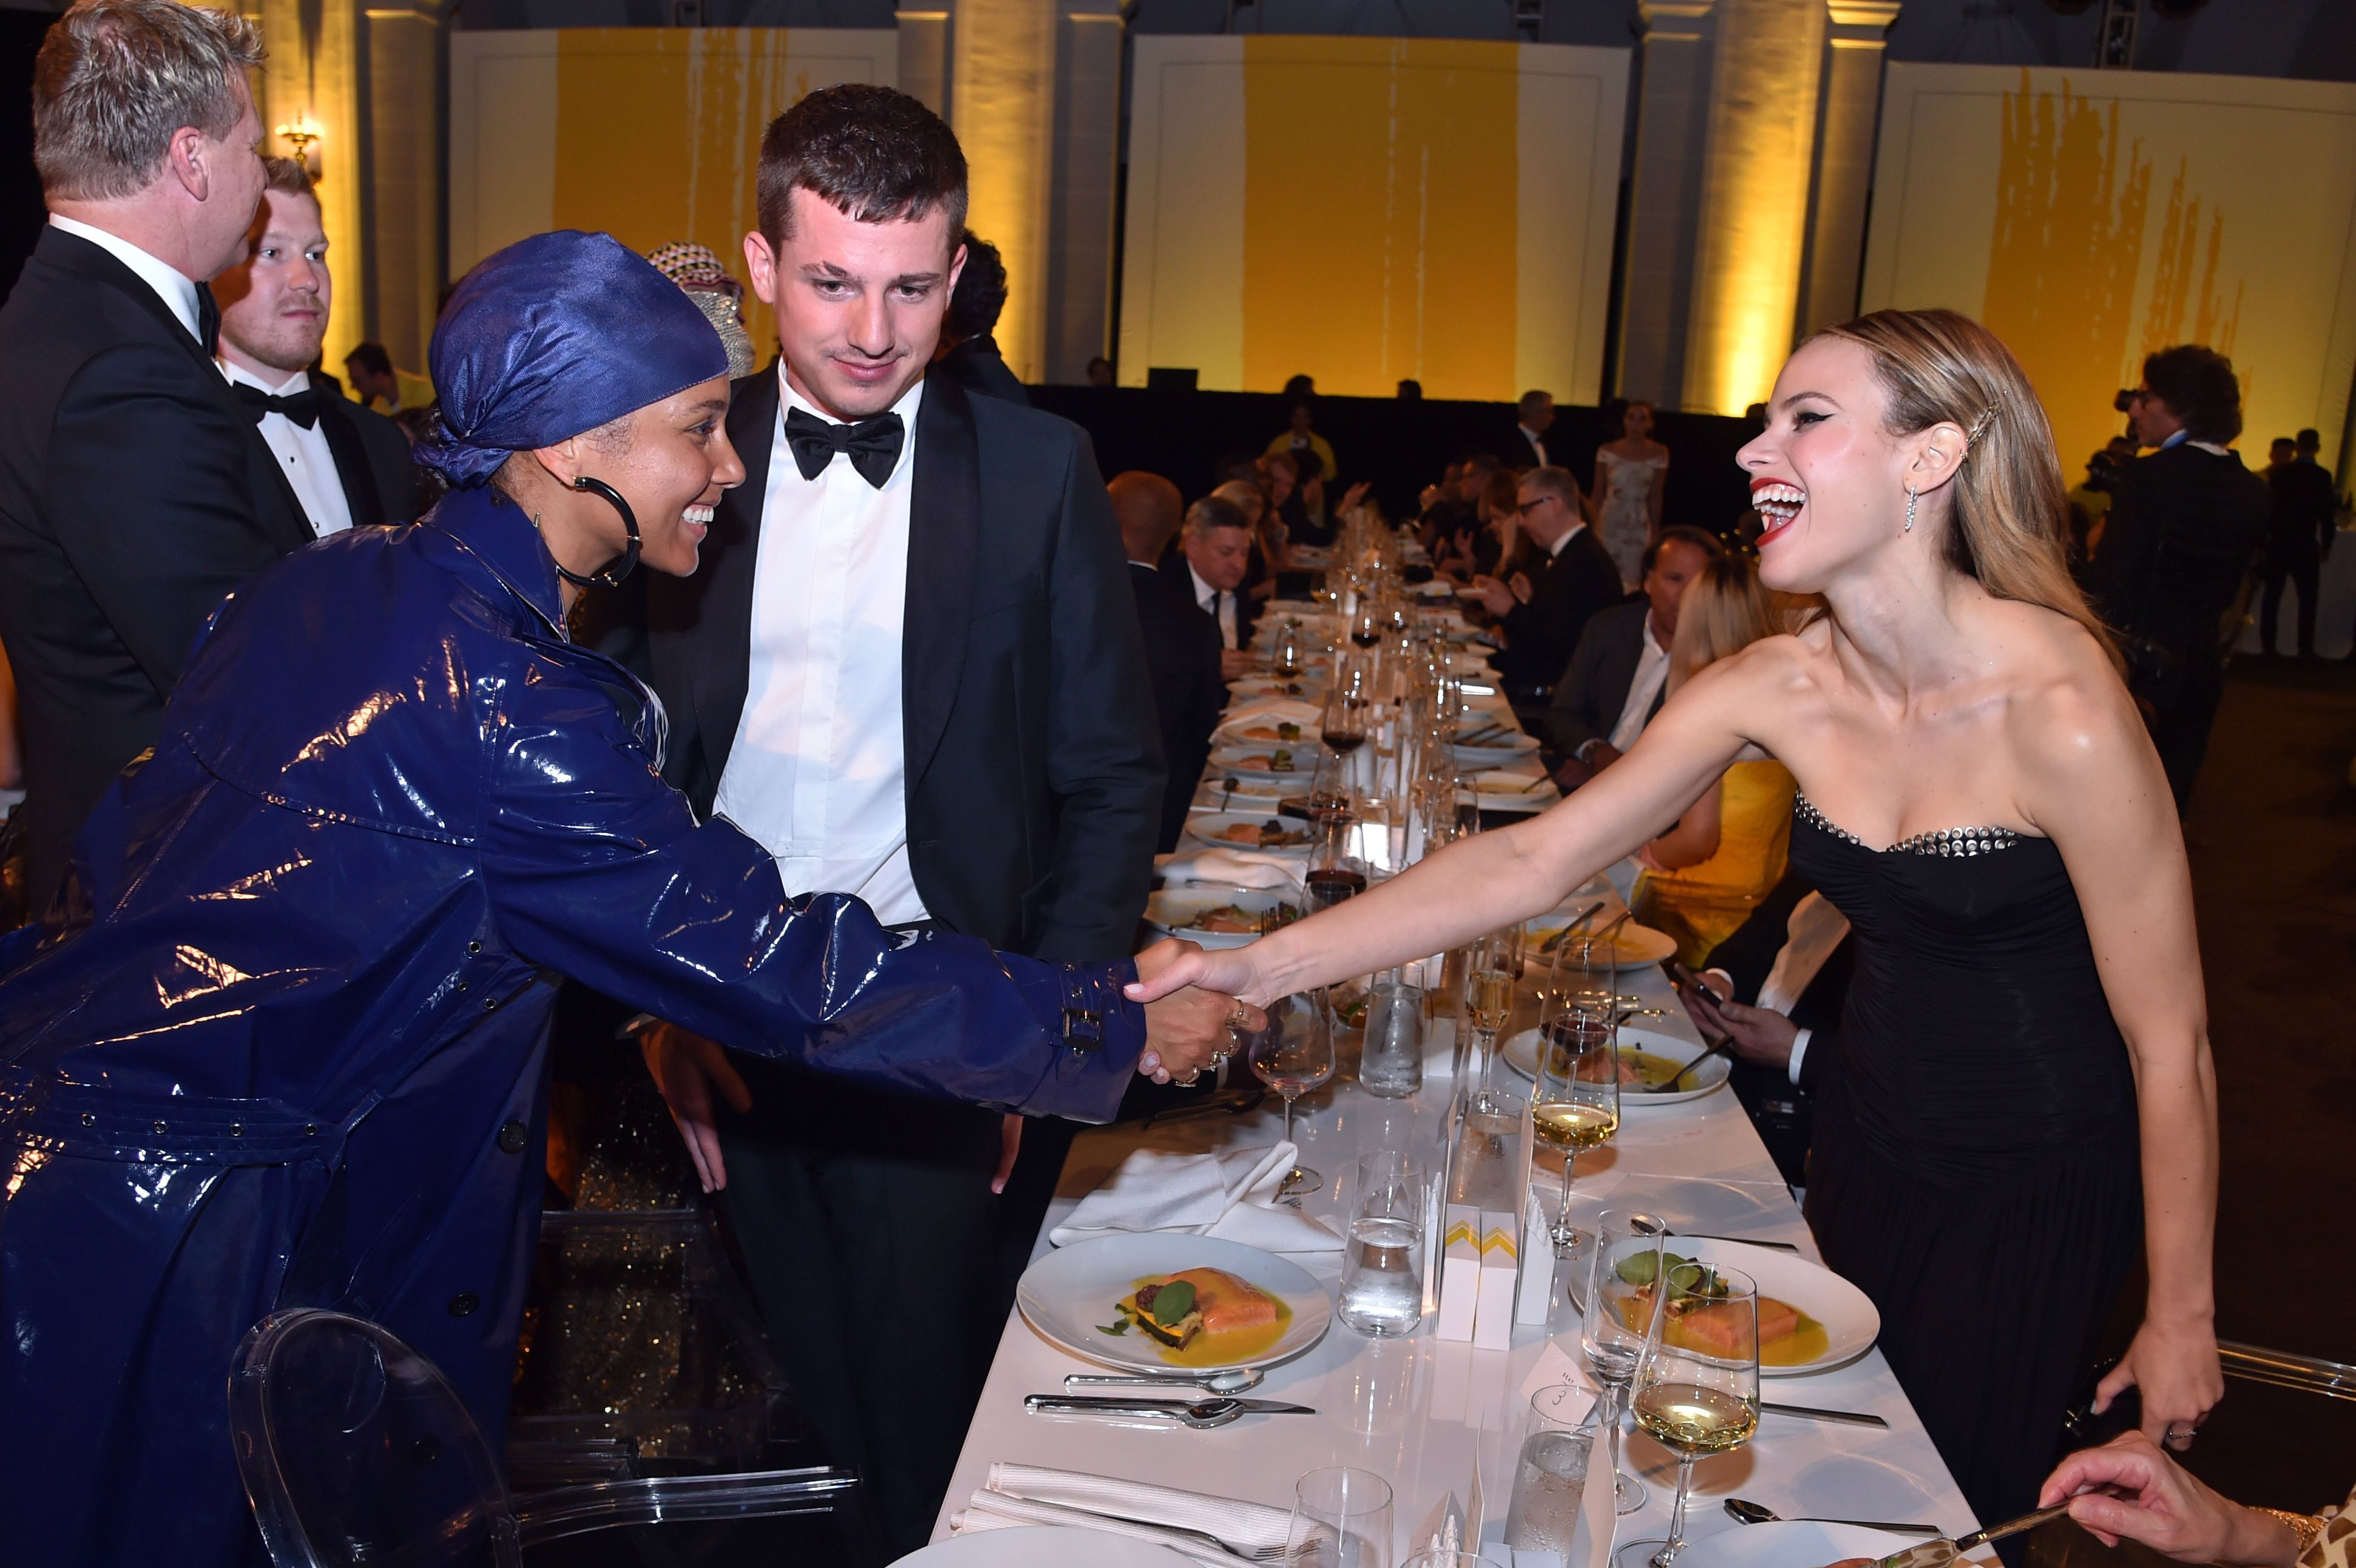 Alicia Keys, Charlie Puth and Halston Sage attend the Yellow Ball in New York City on Sept. 10, 2018.